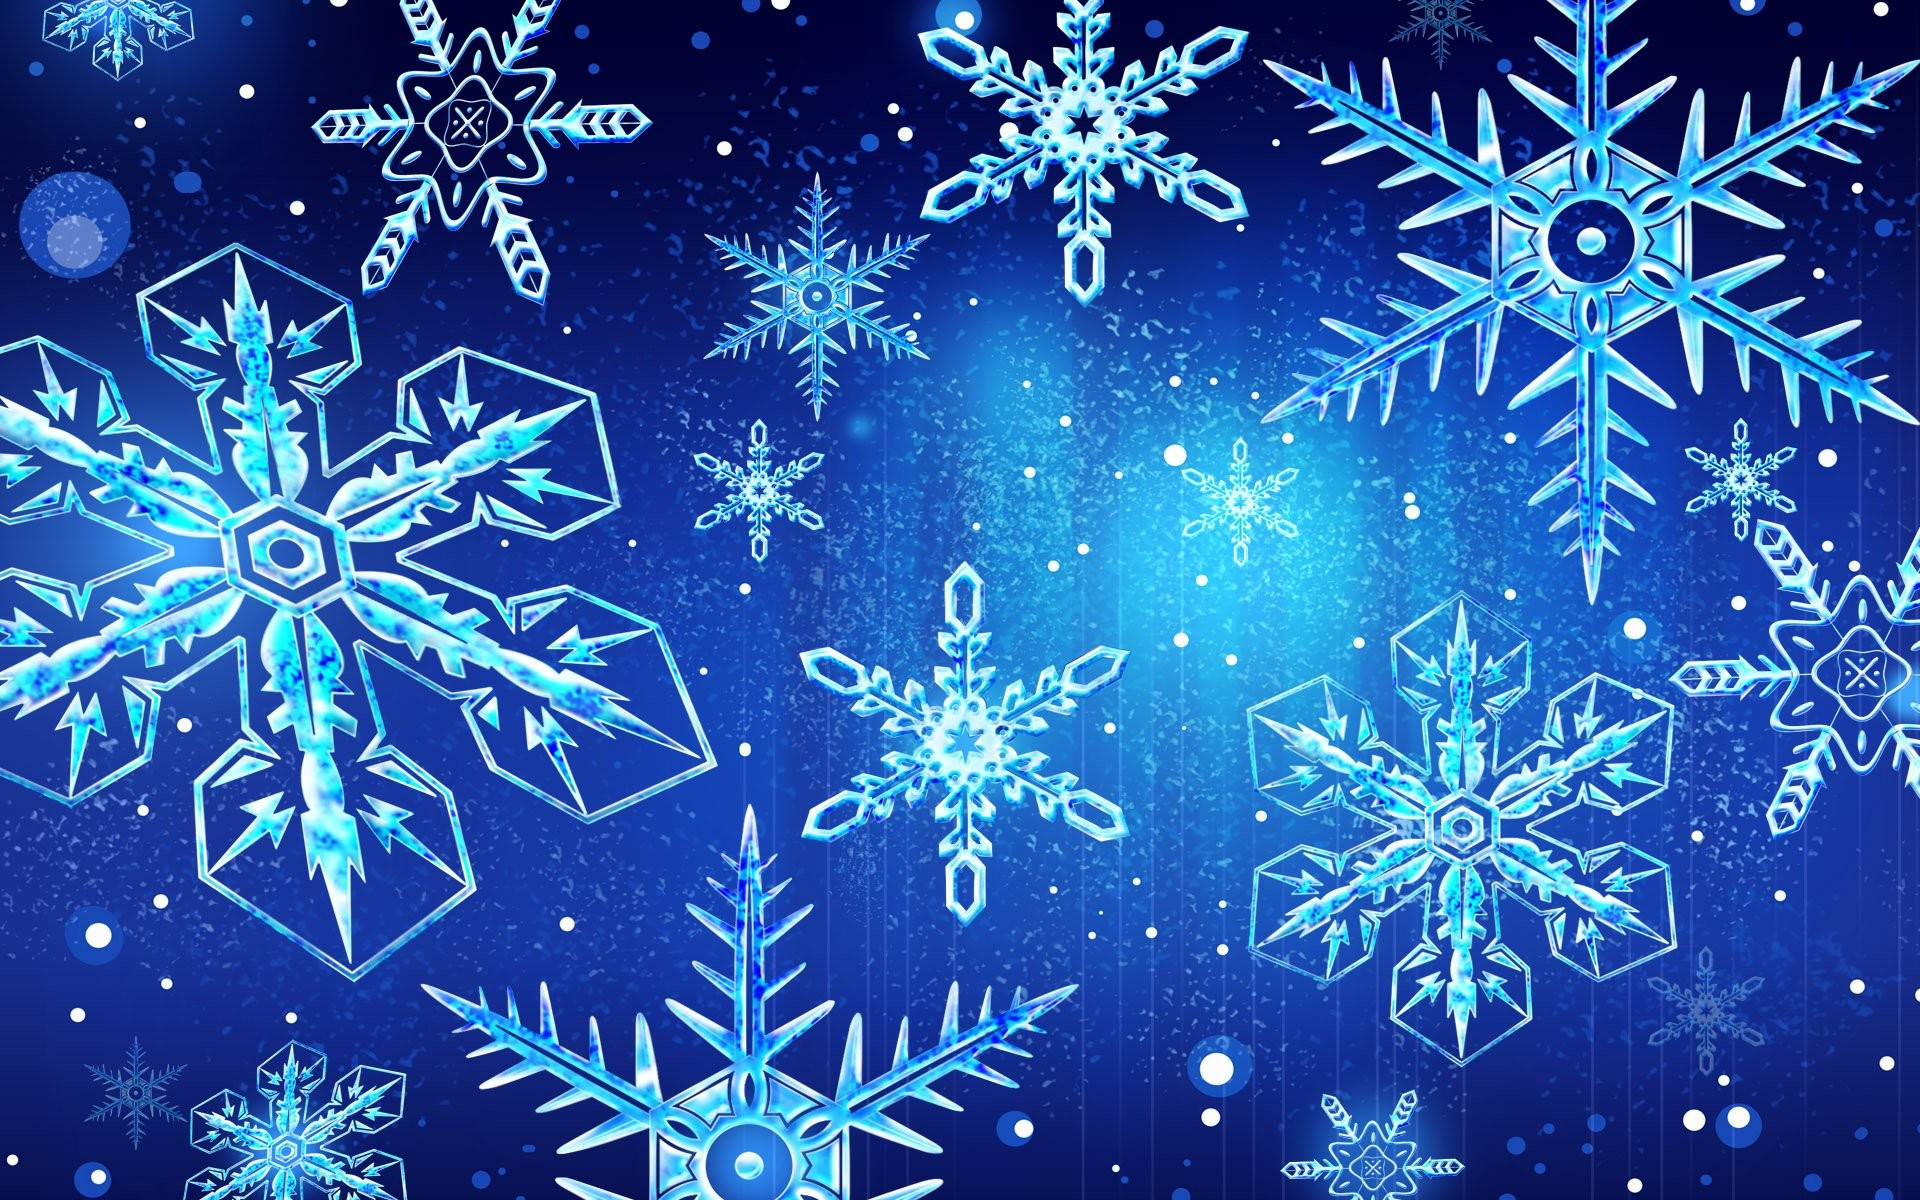 Res: 1920x1200, HD Wallpaper | Background Image ID:85910.  Artistic Snowflake